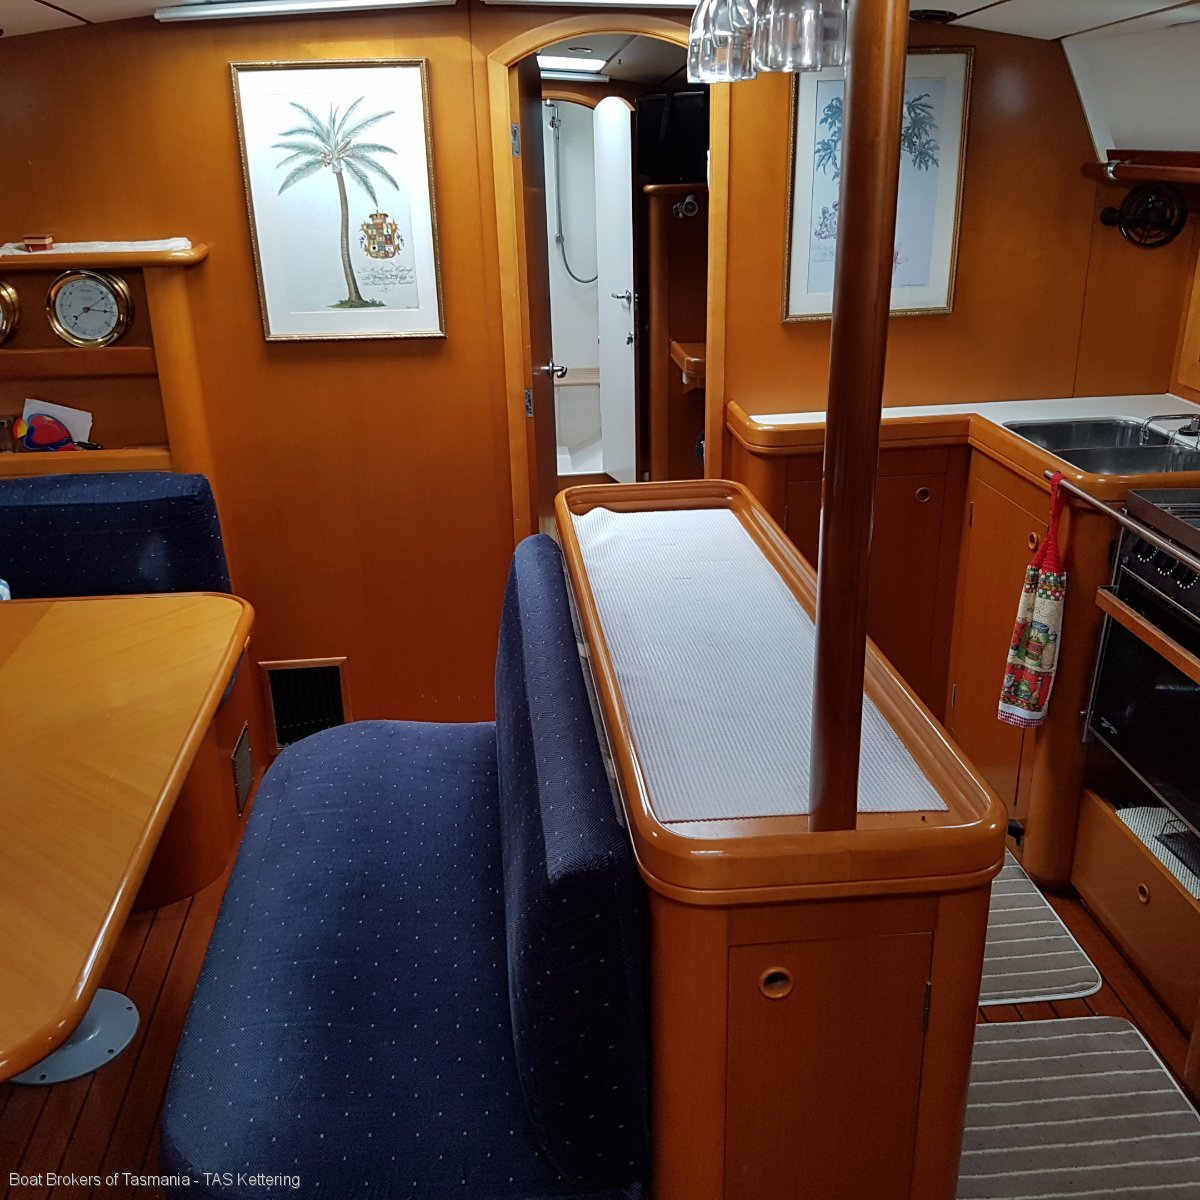 Cumulus 1 Beneteau 50.3 cabins and 3 heads layout. Boat Brokers of Tasmania